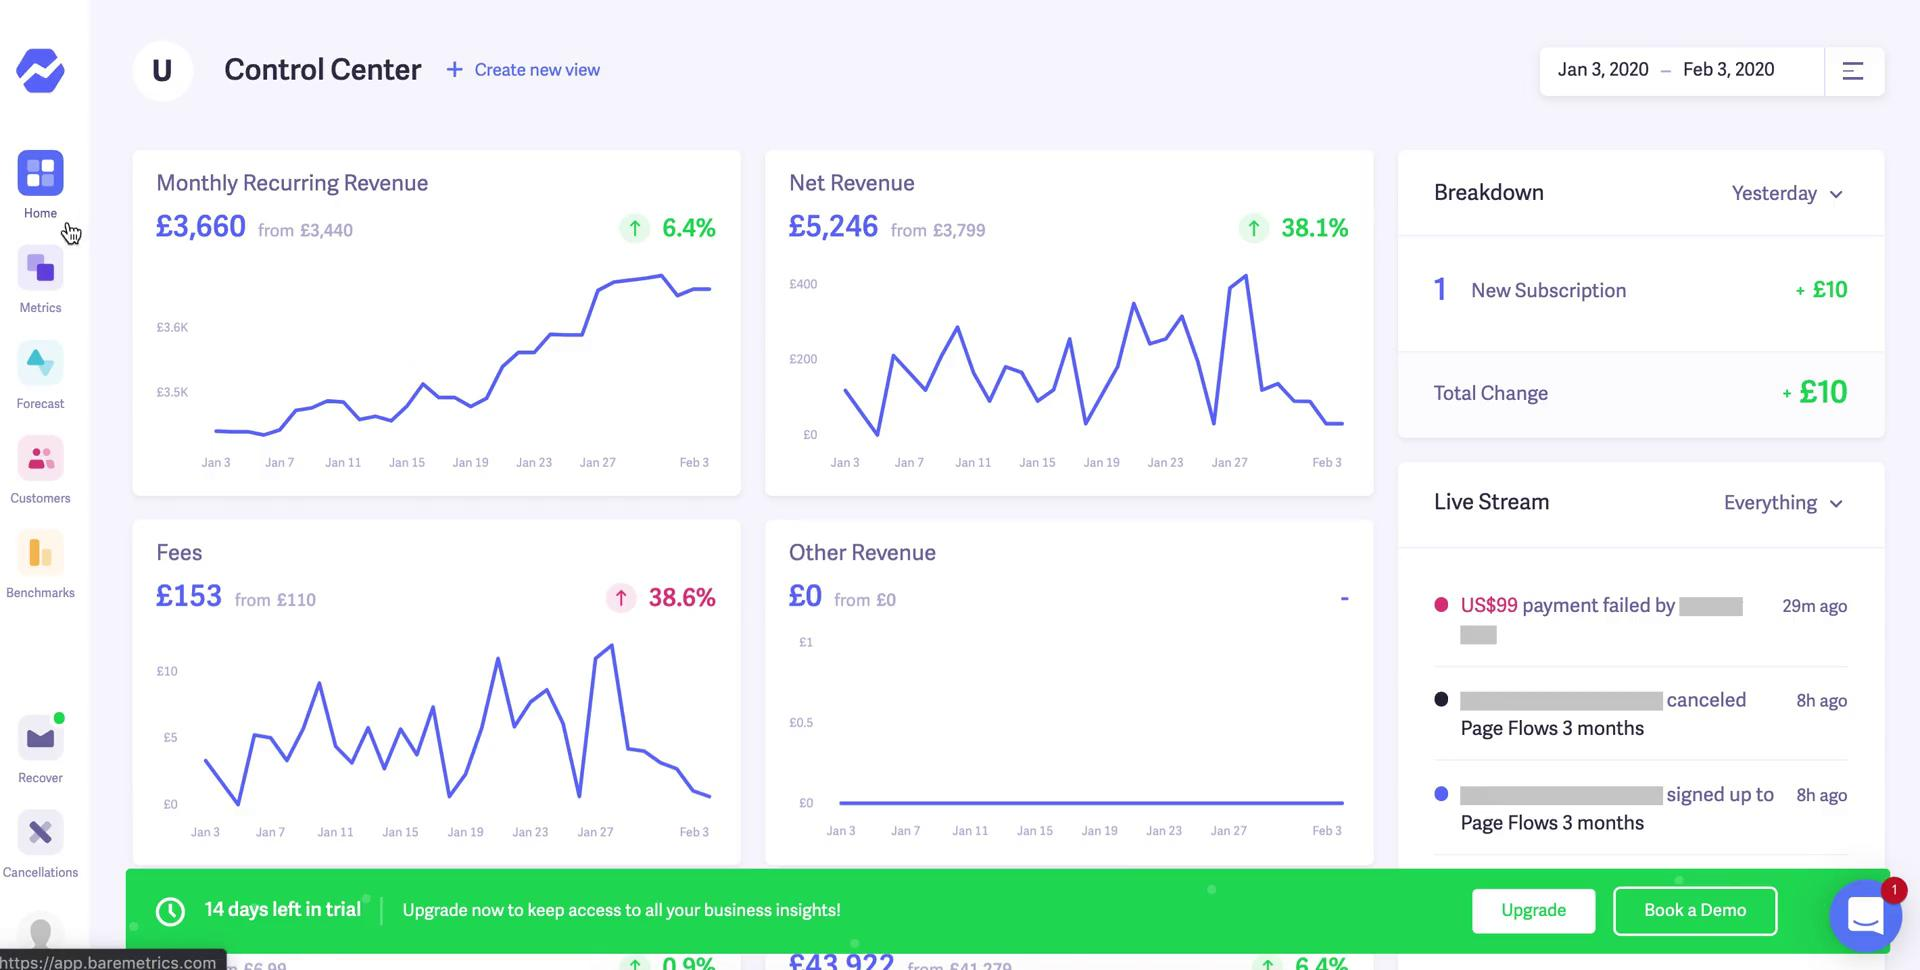 Analytics/Stats on Baremetrics video screenshot